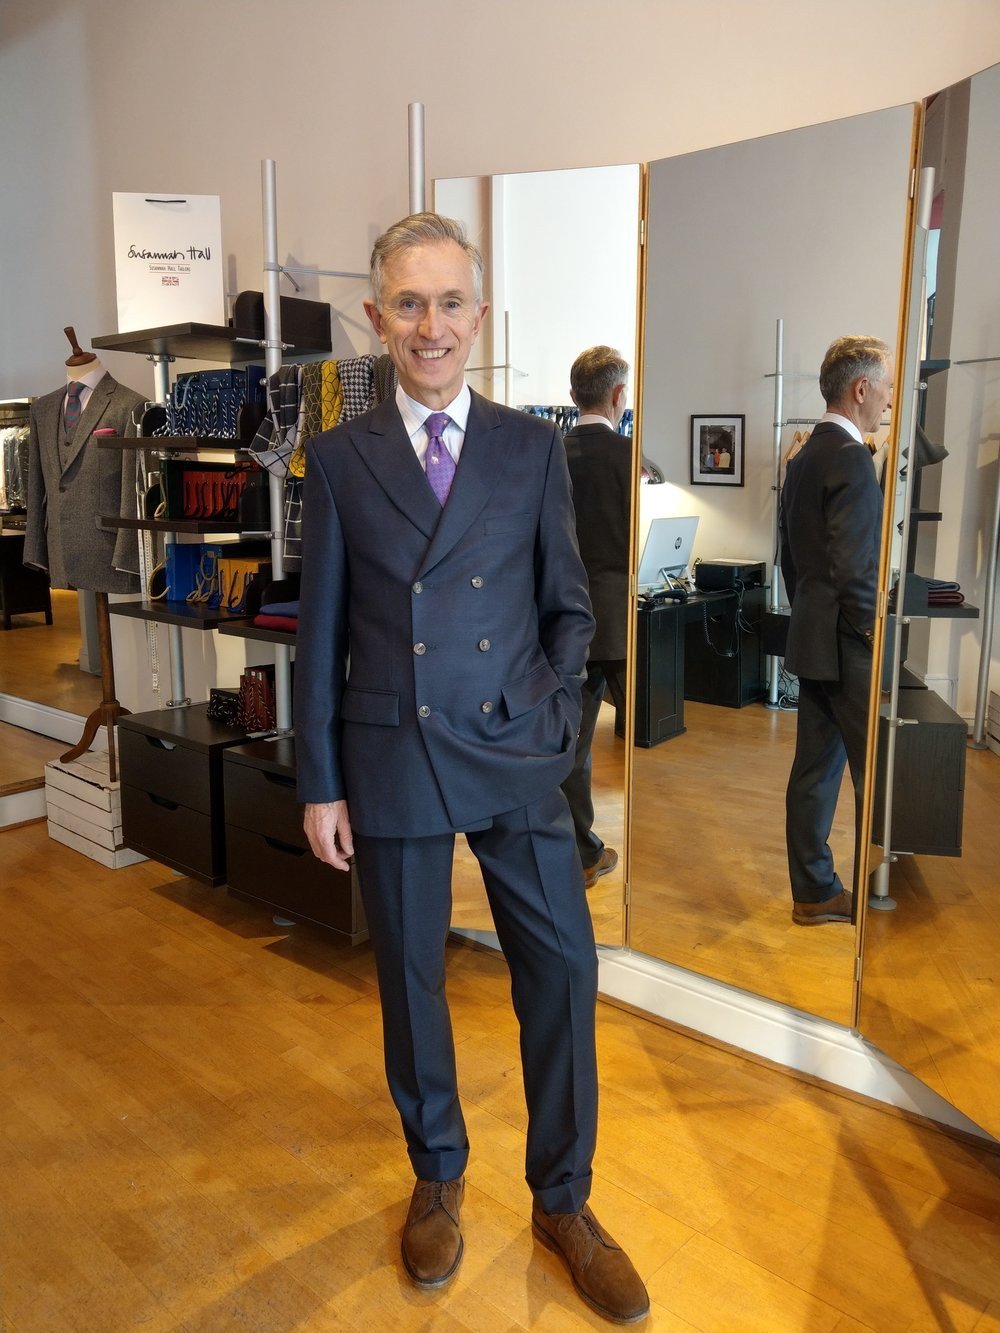 grey-fox-blog-david-evans-susannah-hall-tailor-bespoke-british-made-fully-canvas-dormeuil-double-breasted.jpg